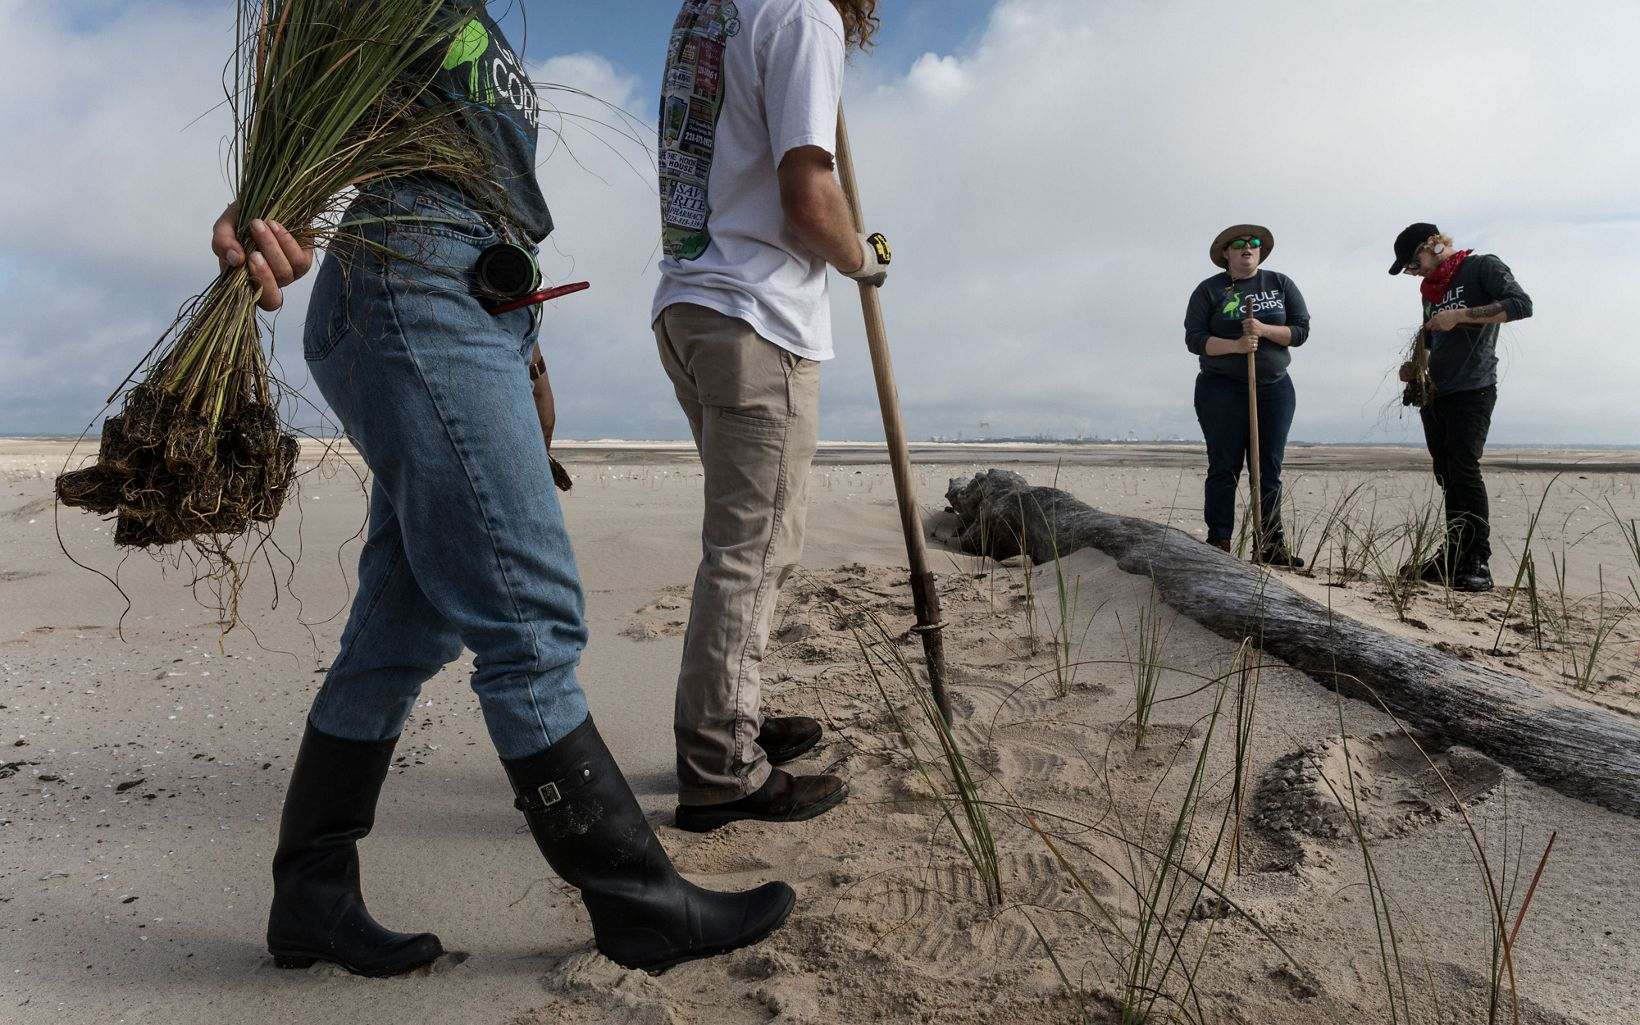 Members of the Conservation Corps on Round Island, a few miles offshore of Pascagoula, Mississippi, planting sea oats, helping to bring life to this manmade island created when the area was dredged. This project is also supported by The Nature Conservancy.